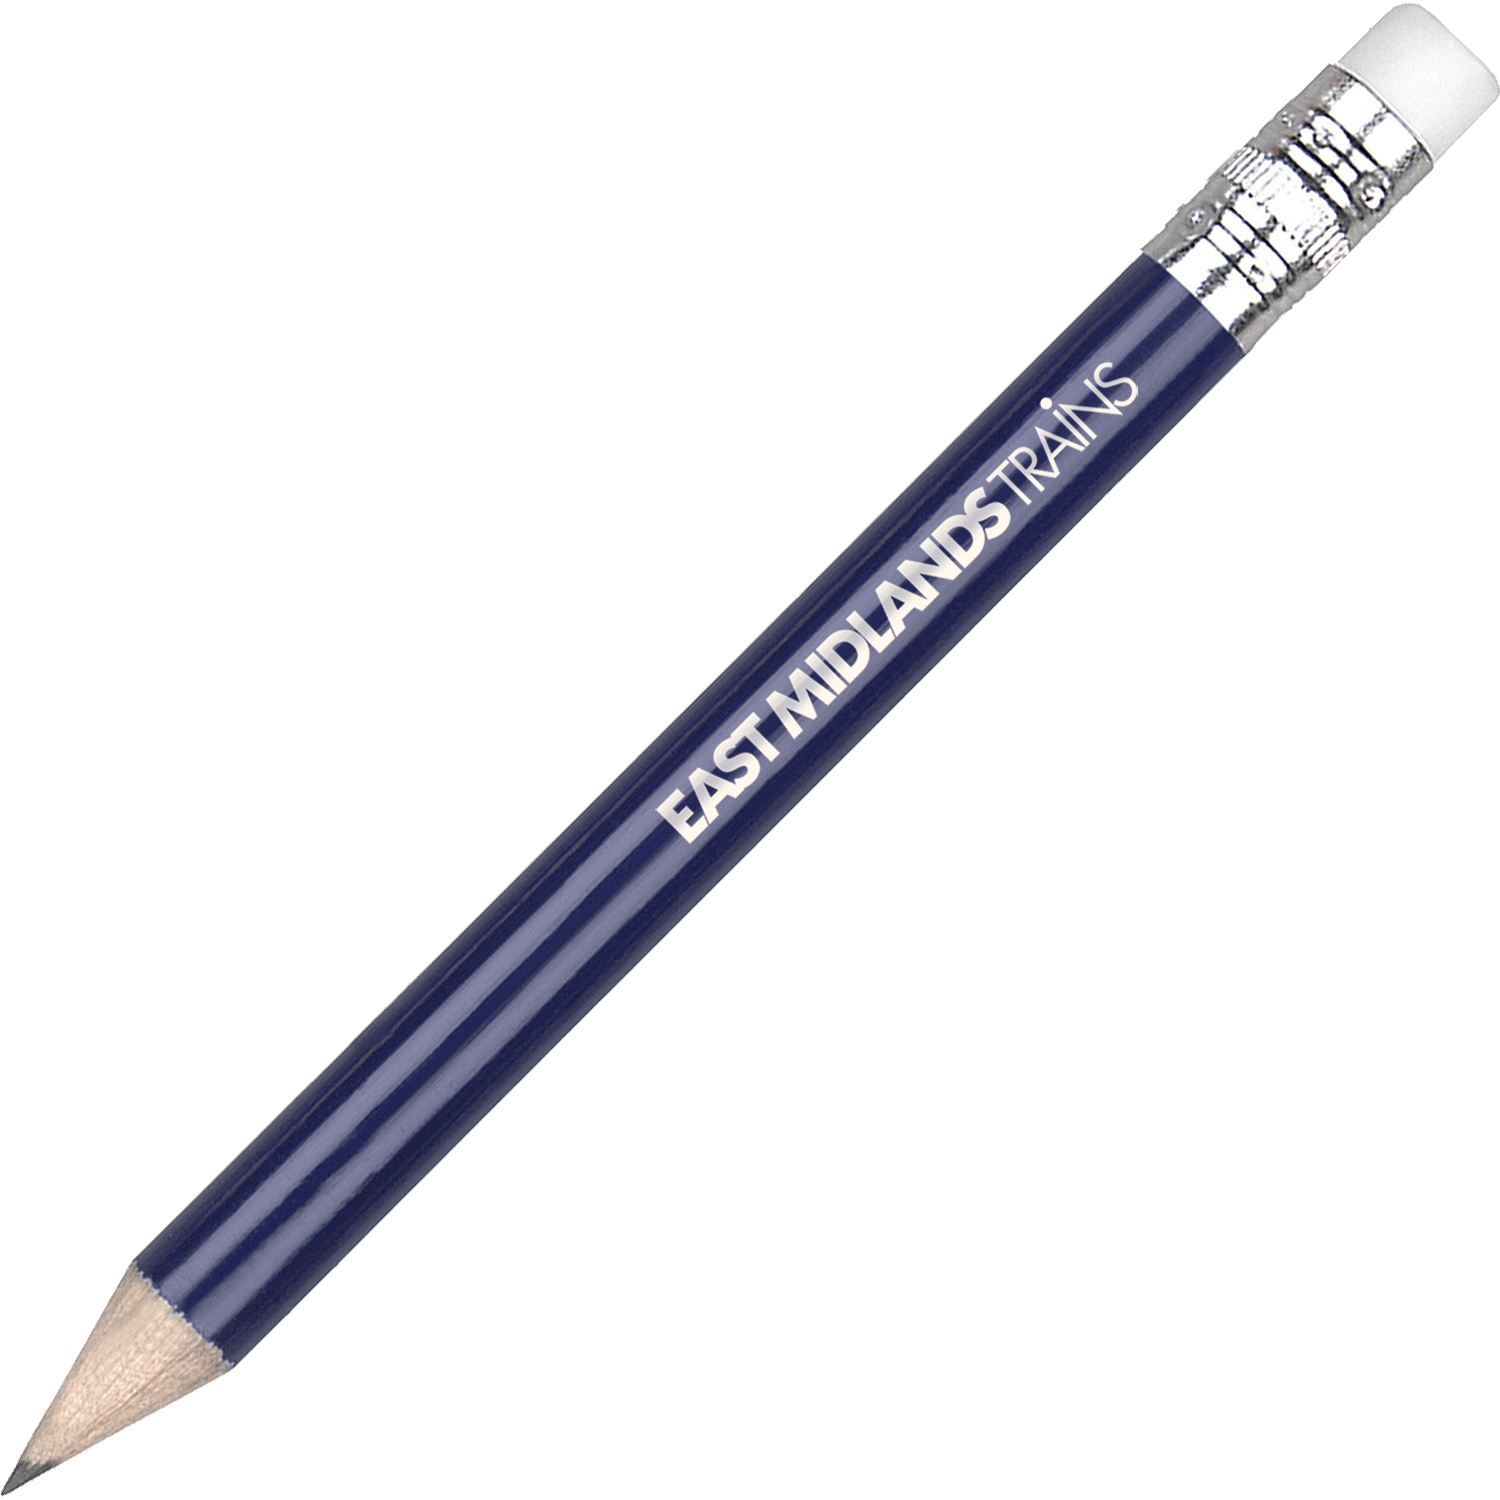 Mini Pencil With Eraser